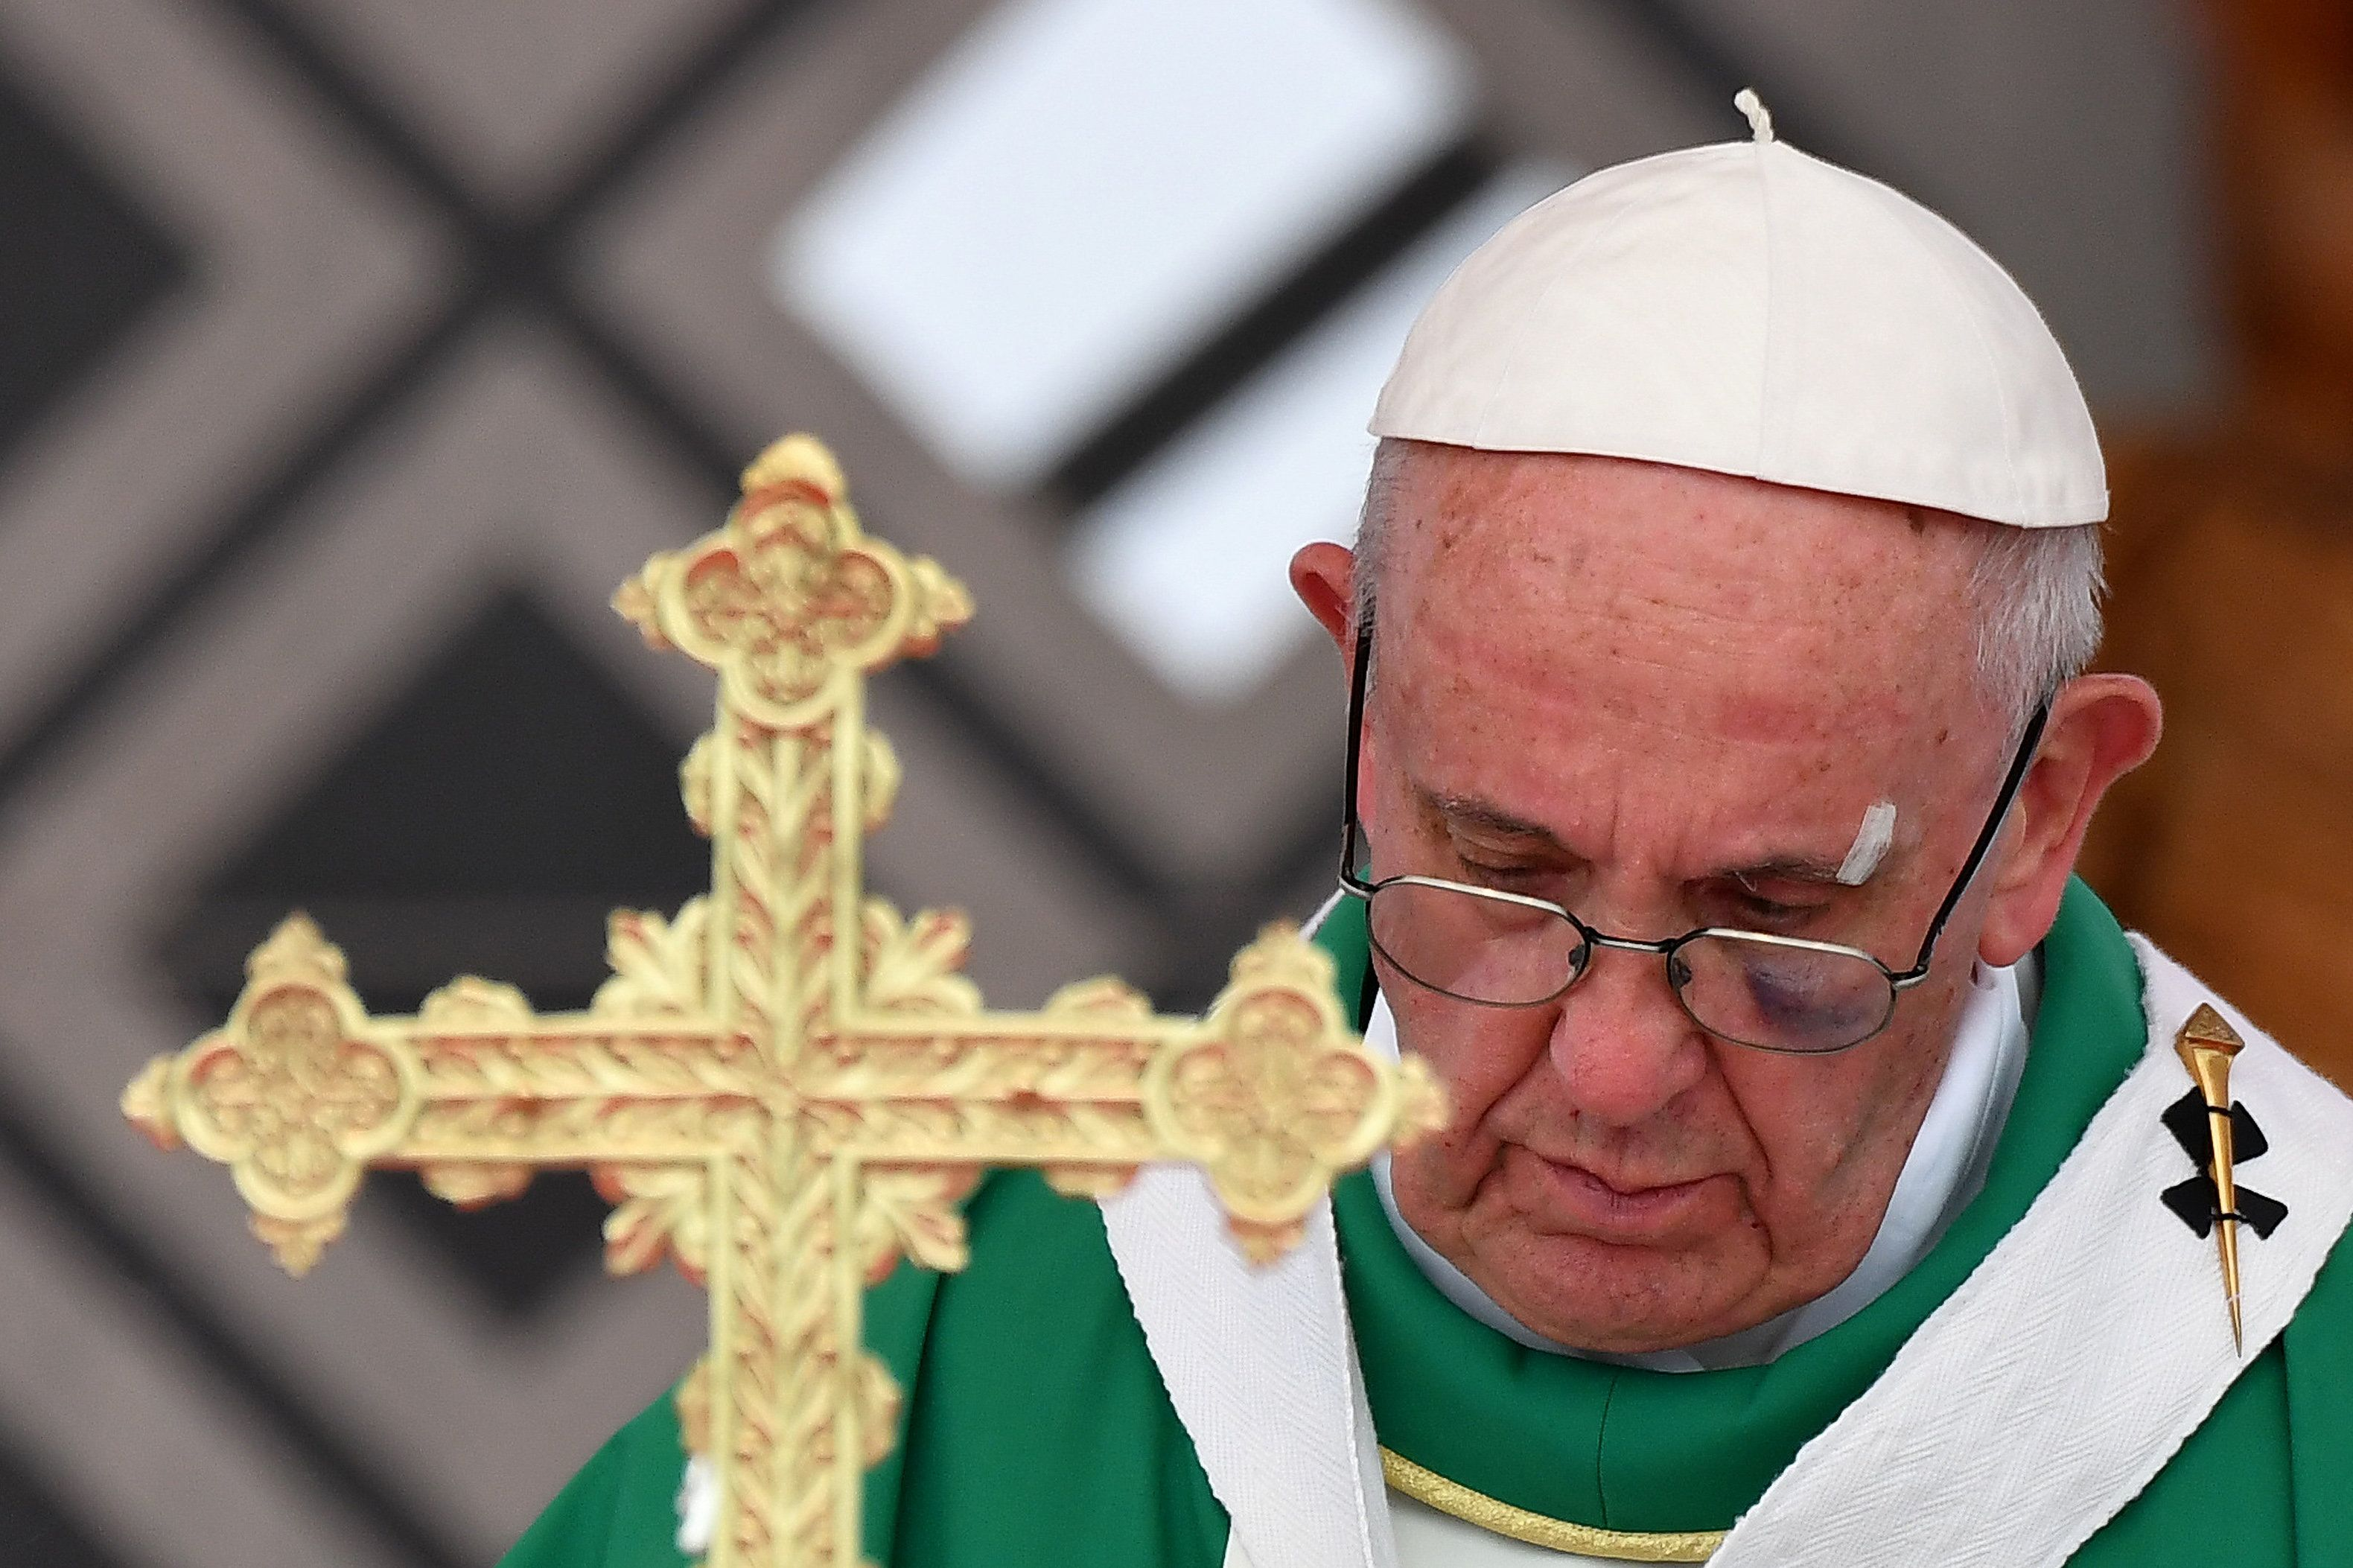 Group accuses Pope Francis of heresy